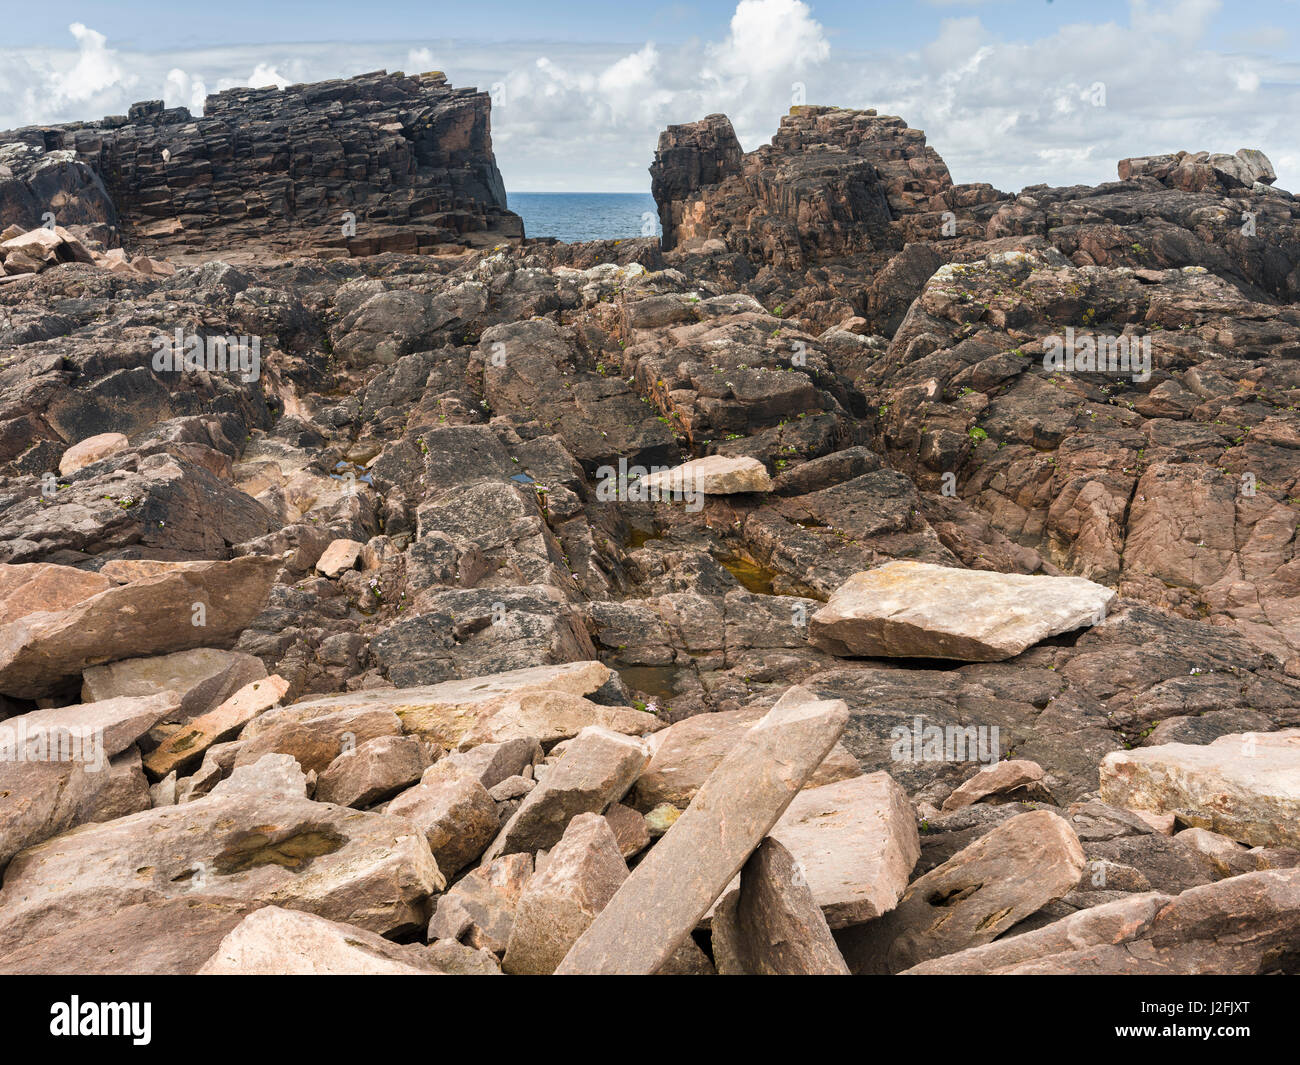 Landscape on the Esha Ness Peninsula, Grind of Navir, a dry beach. The famous cliffs and sea stacks of Esha Ness, - Stock Image